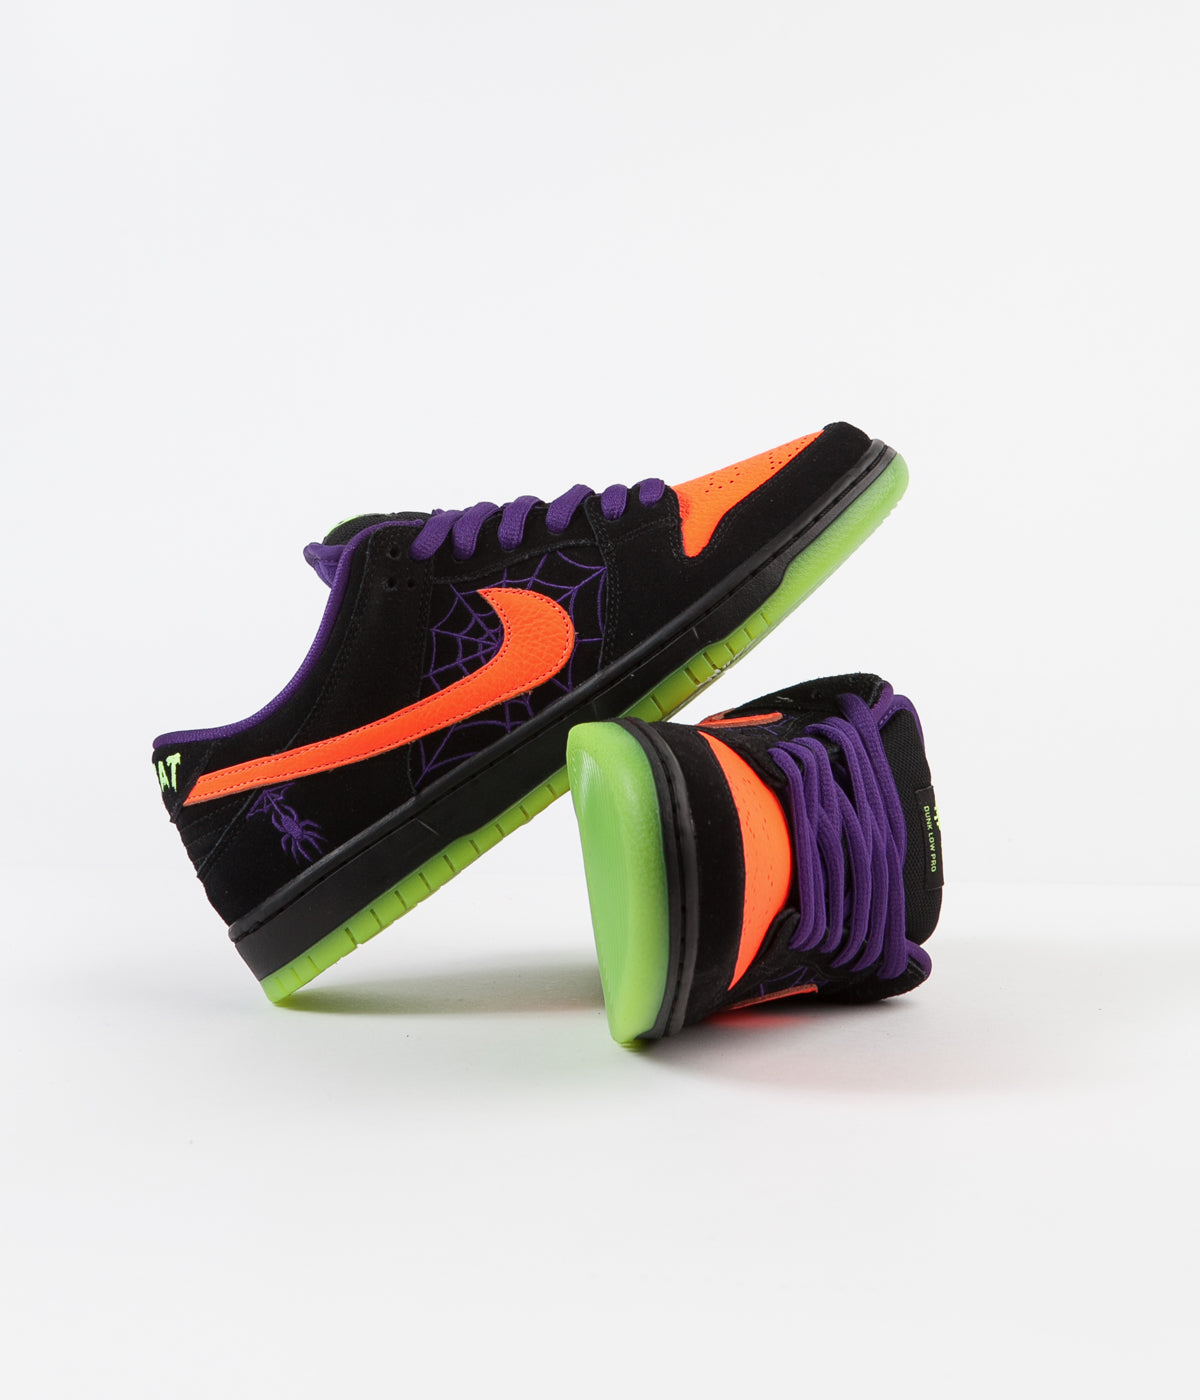 Nike SB Dunk Low Pro 'Night Of Mischief' Shoes - Black / Total Orange - Court Purple - Volt